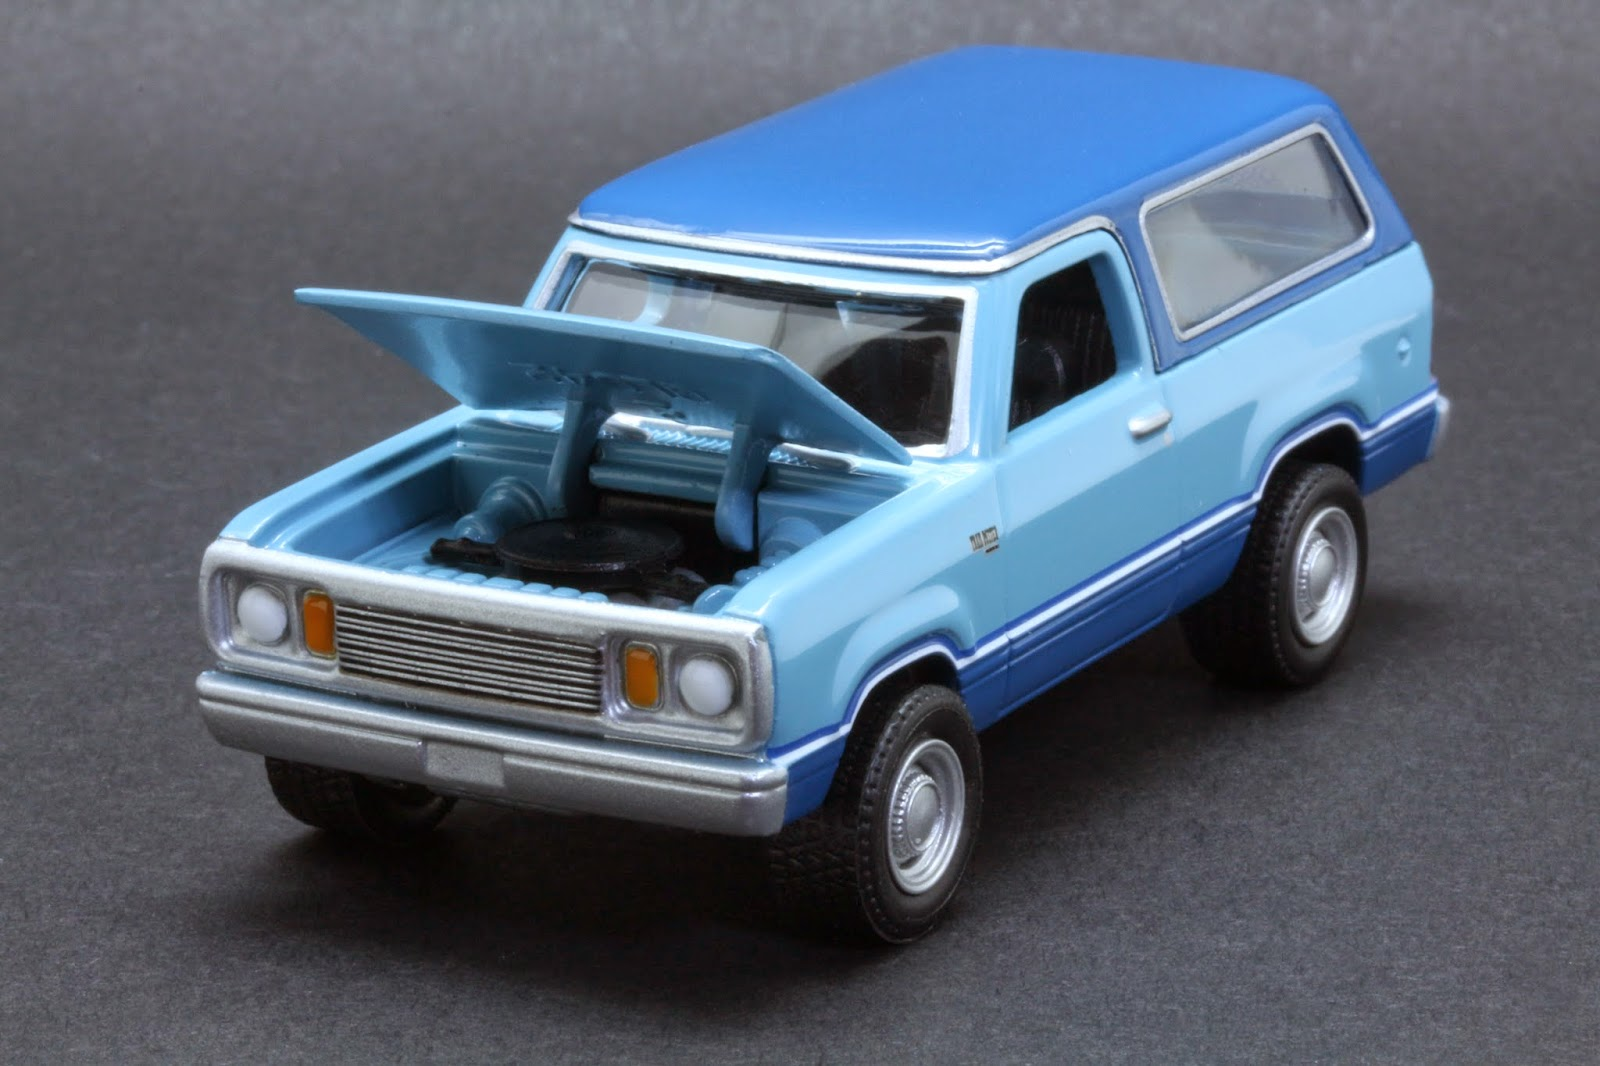 Diecast Hobbist 1977 Plymouth Trail Duster